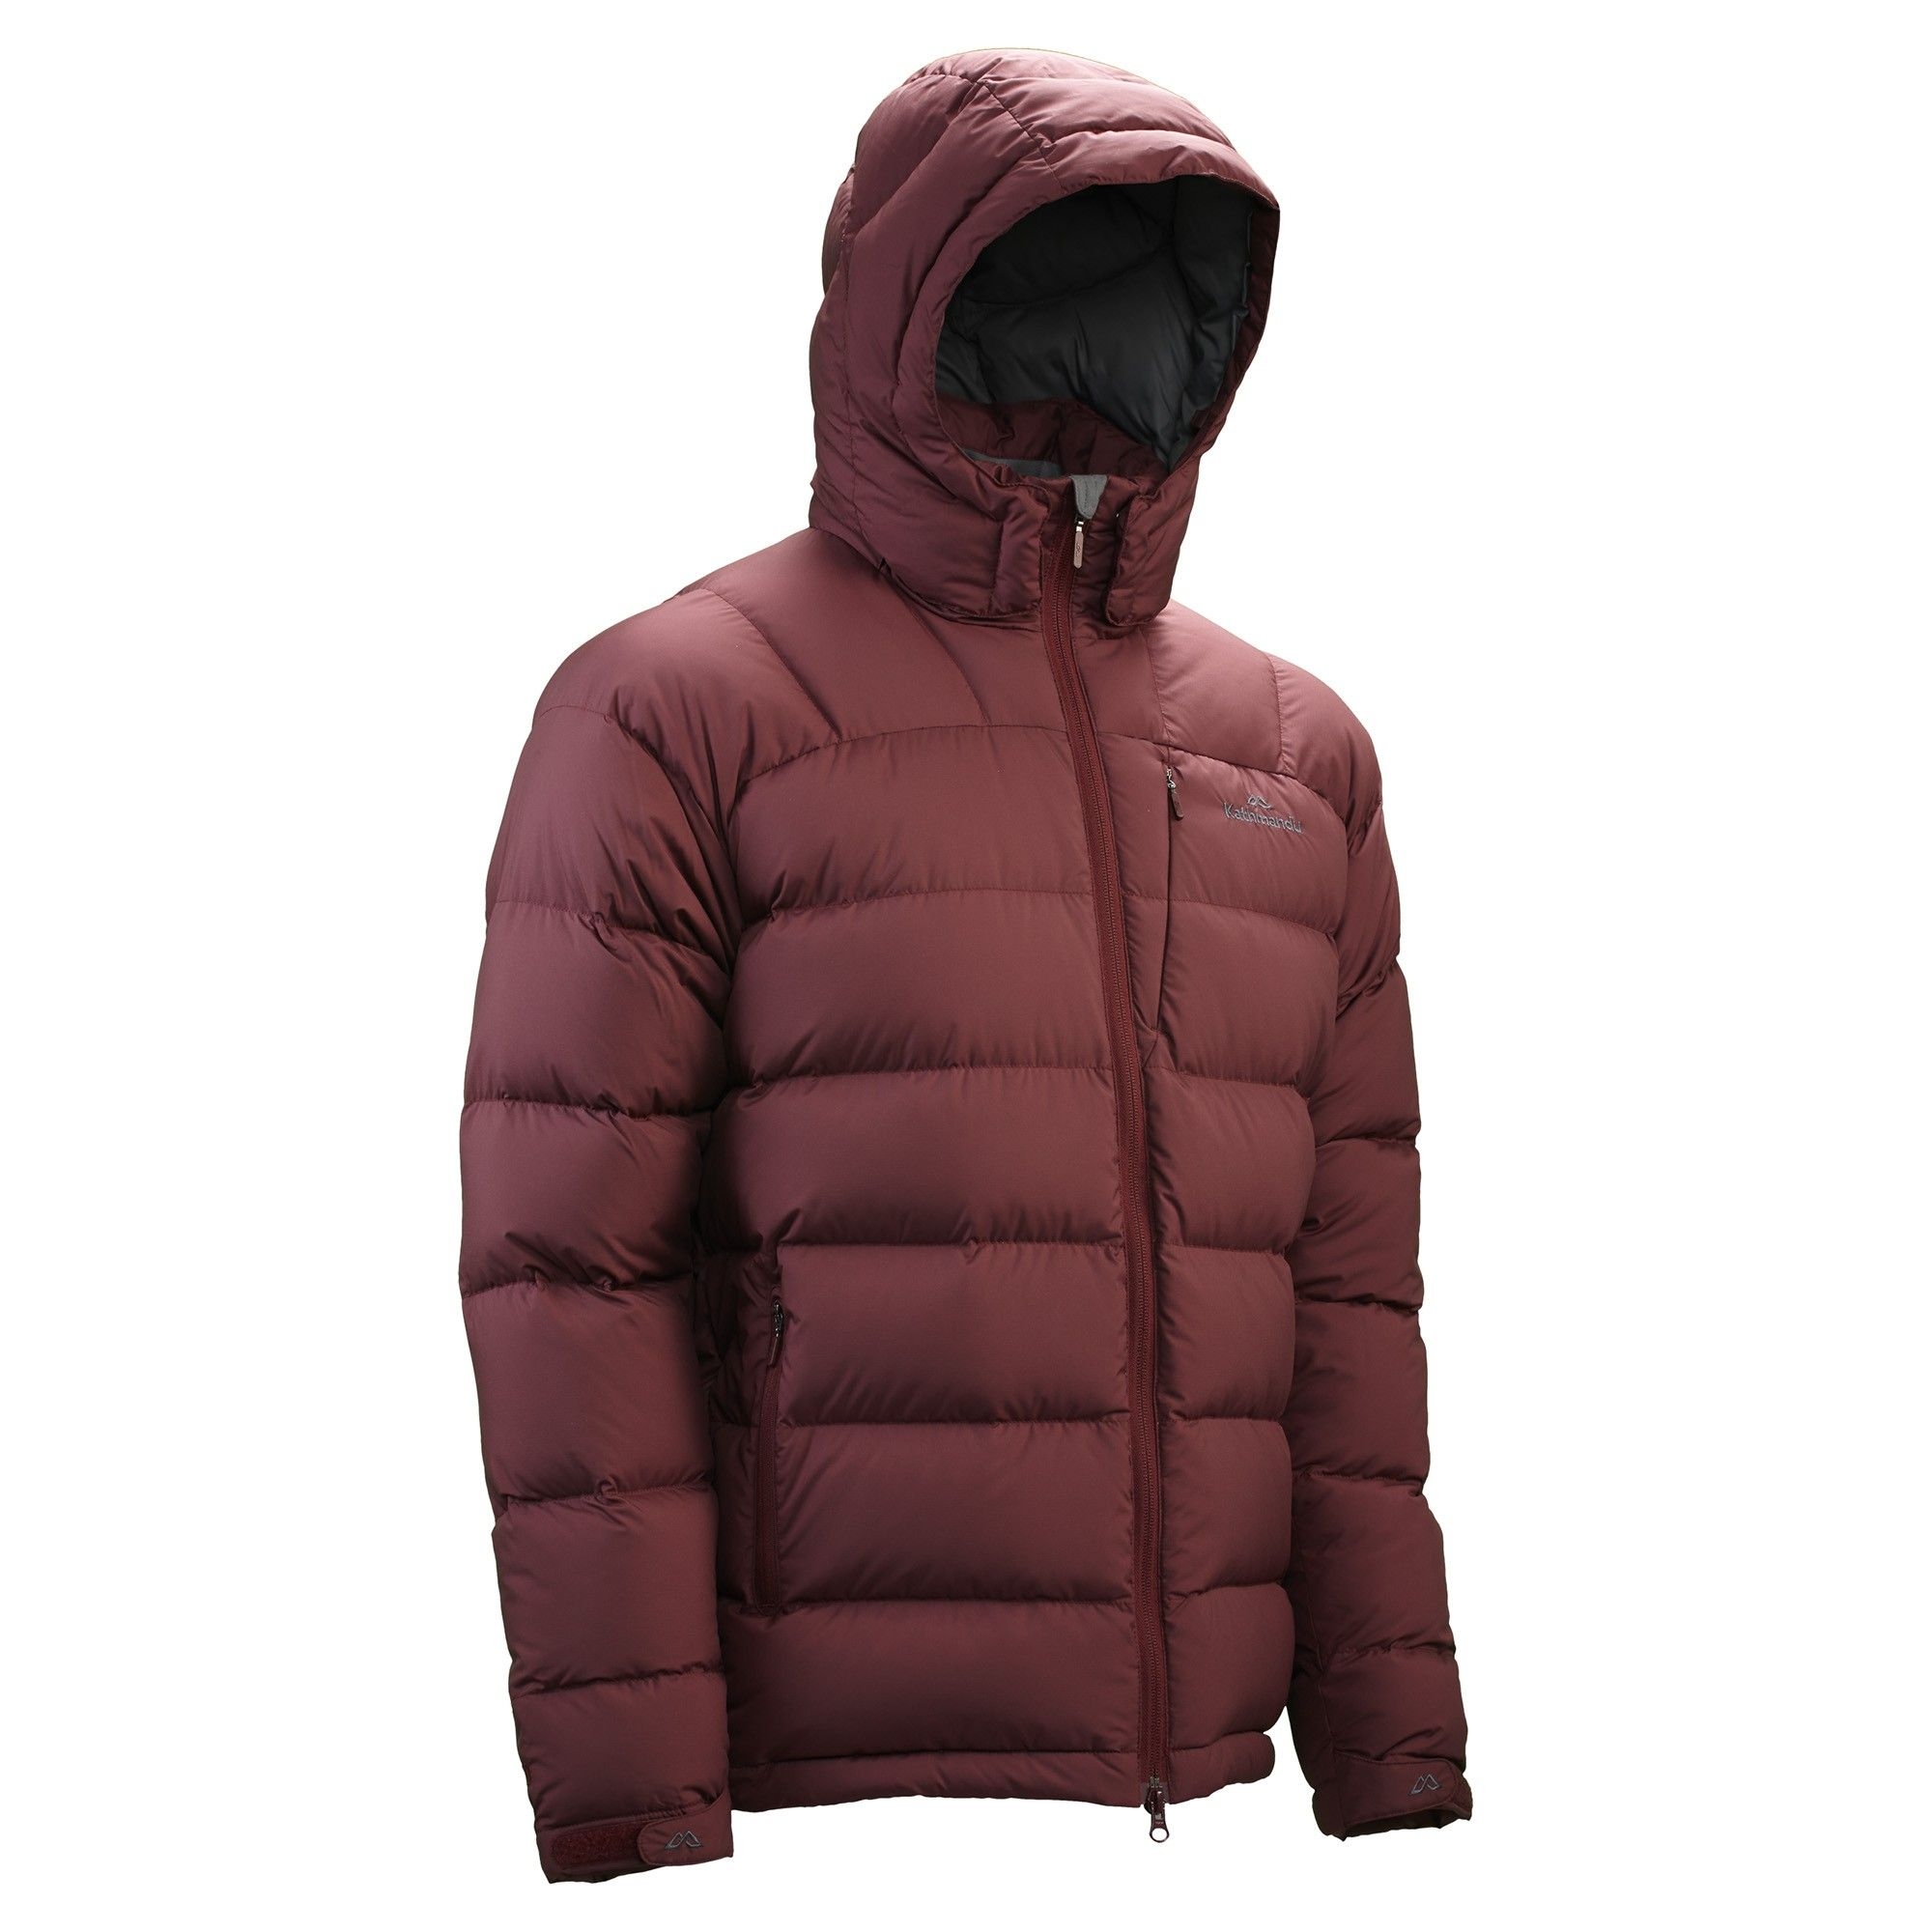 Buy Goose Down Men's Hooded Jacket v4 - Autumn Port online at ...